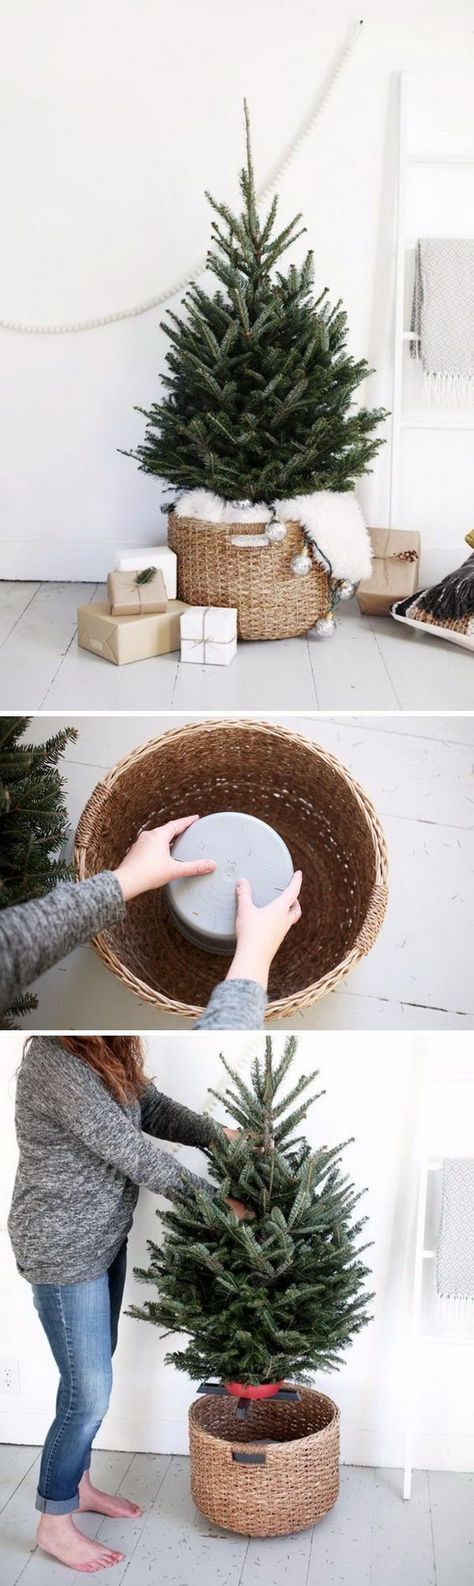 DIY Christmas Tree Stand Using Bucket Upside Down In A